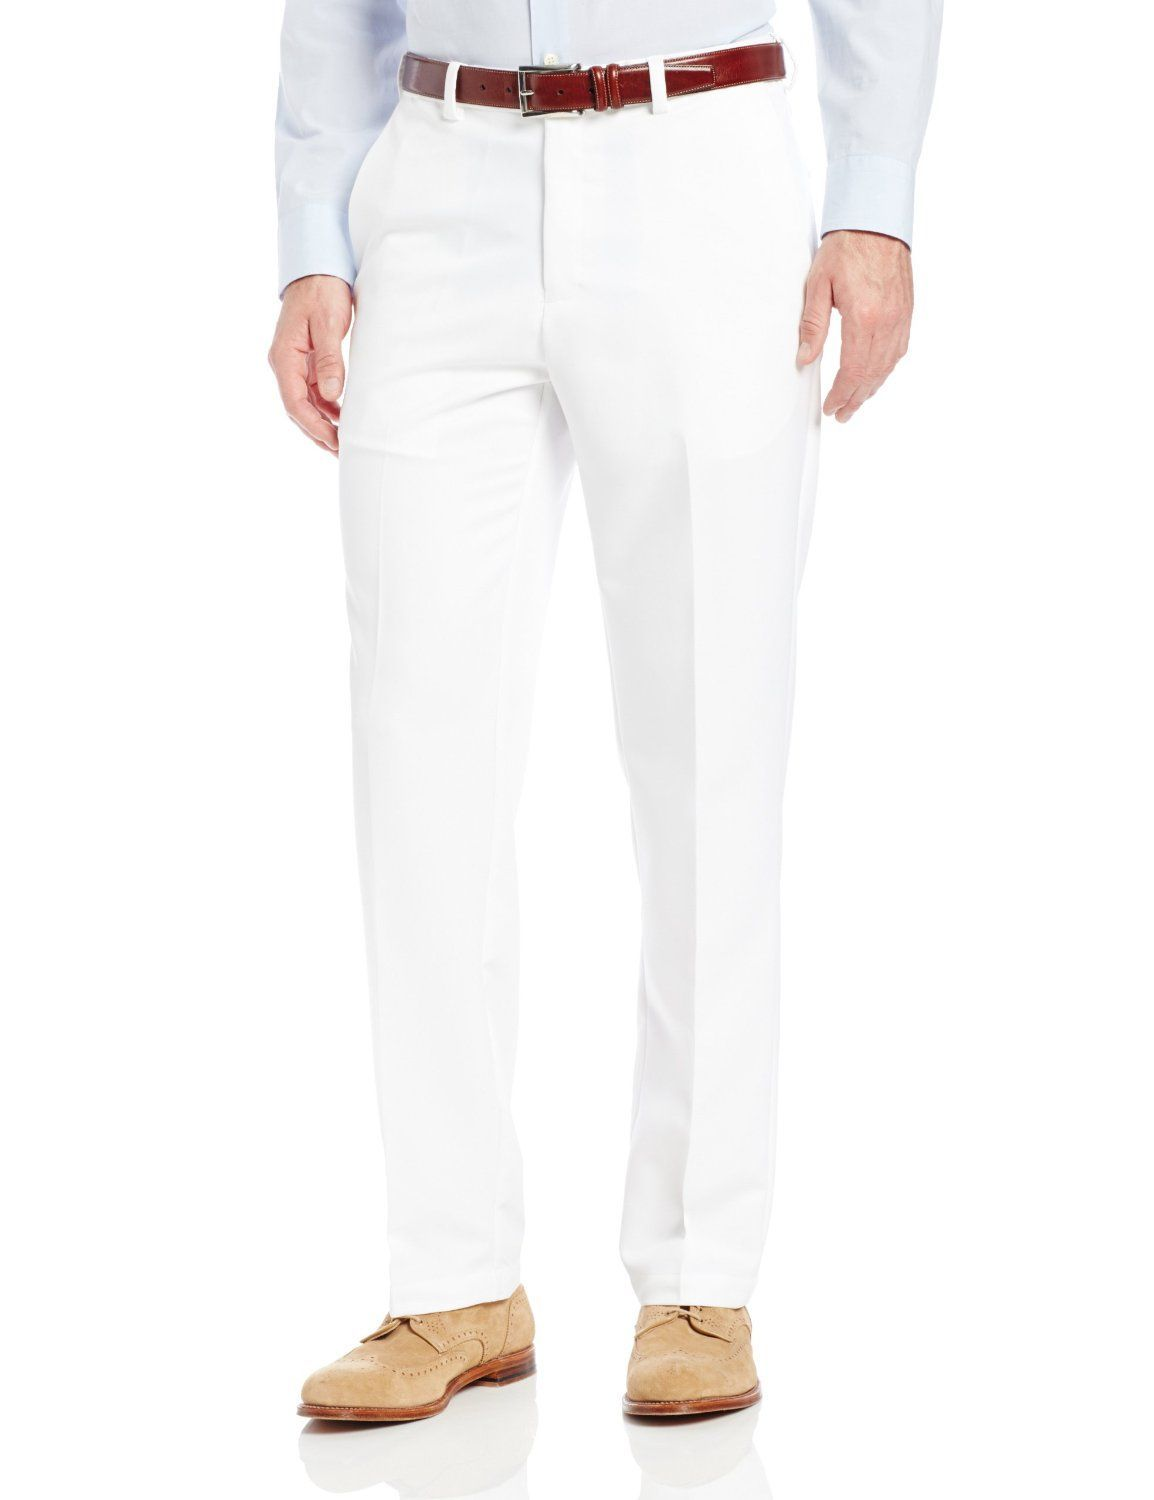 White Dress Pants For Men 9ppdqC5b